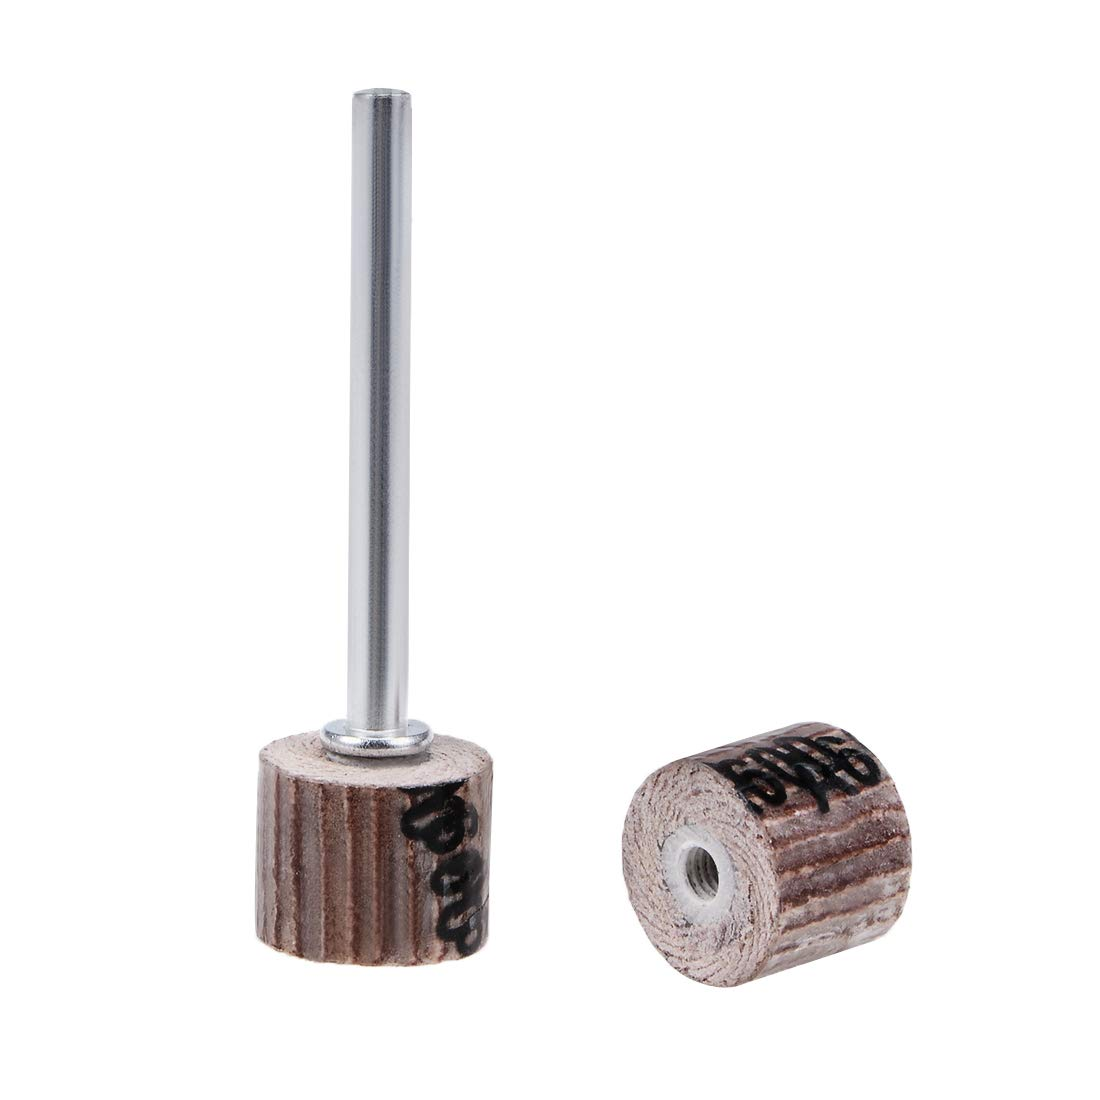 uxcell 2 Pcs 10x10mm Flap Wheel 600 Grits Abrasive Grinding Head with 1/8'' Shank for Rotary Tool